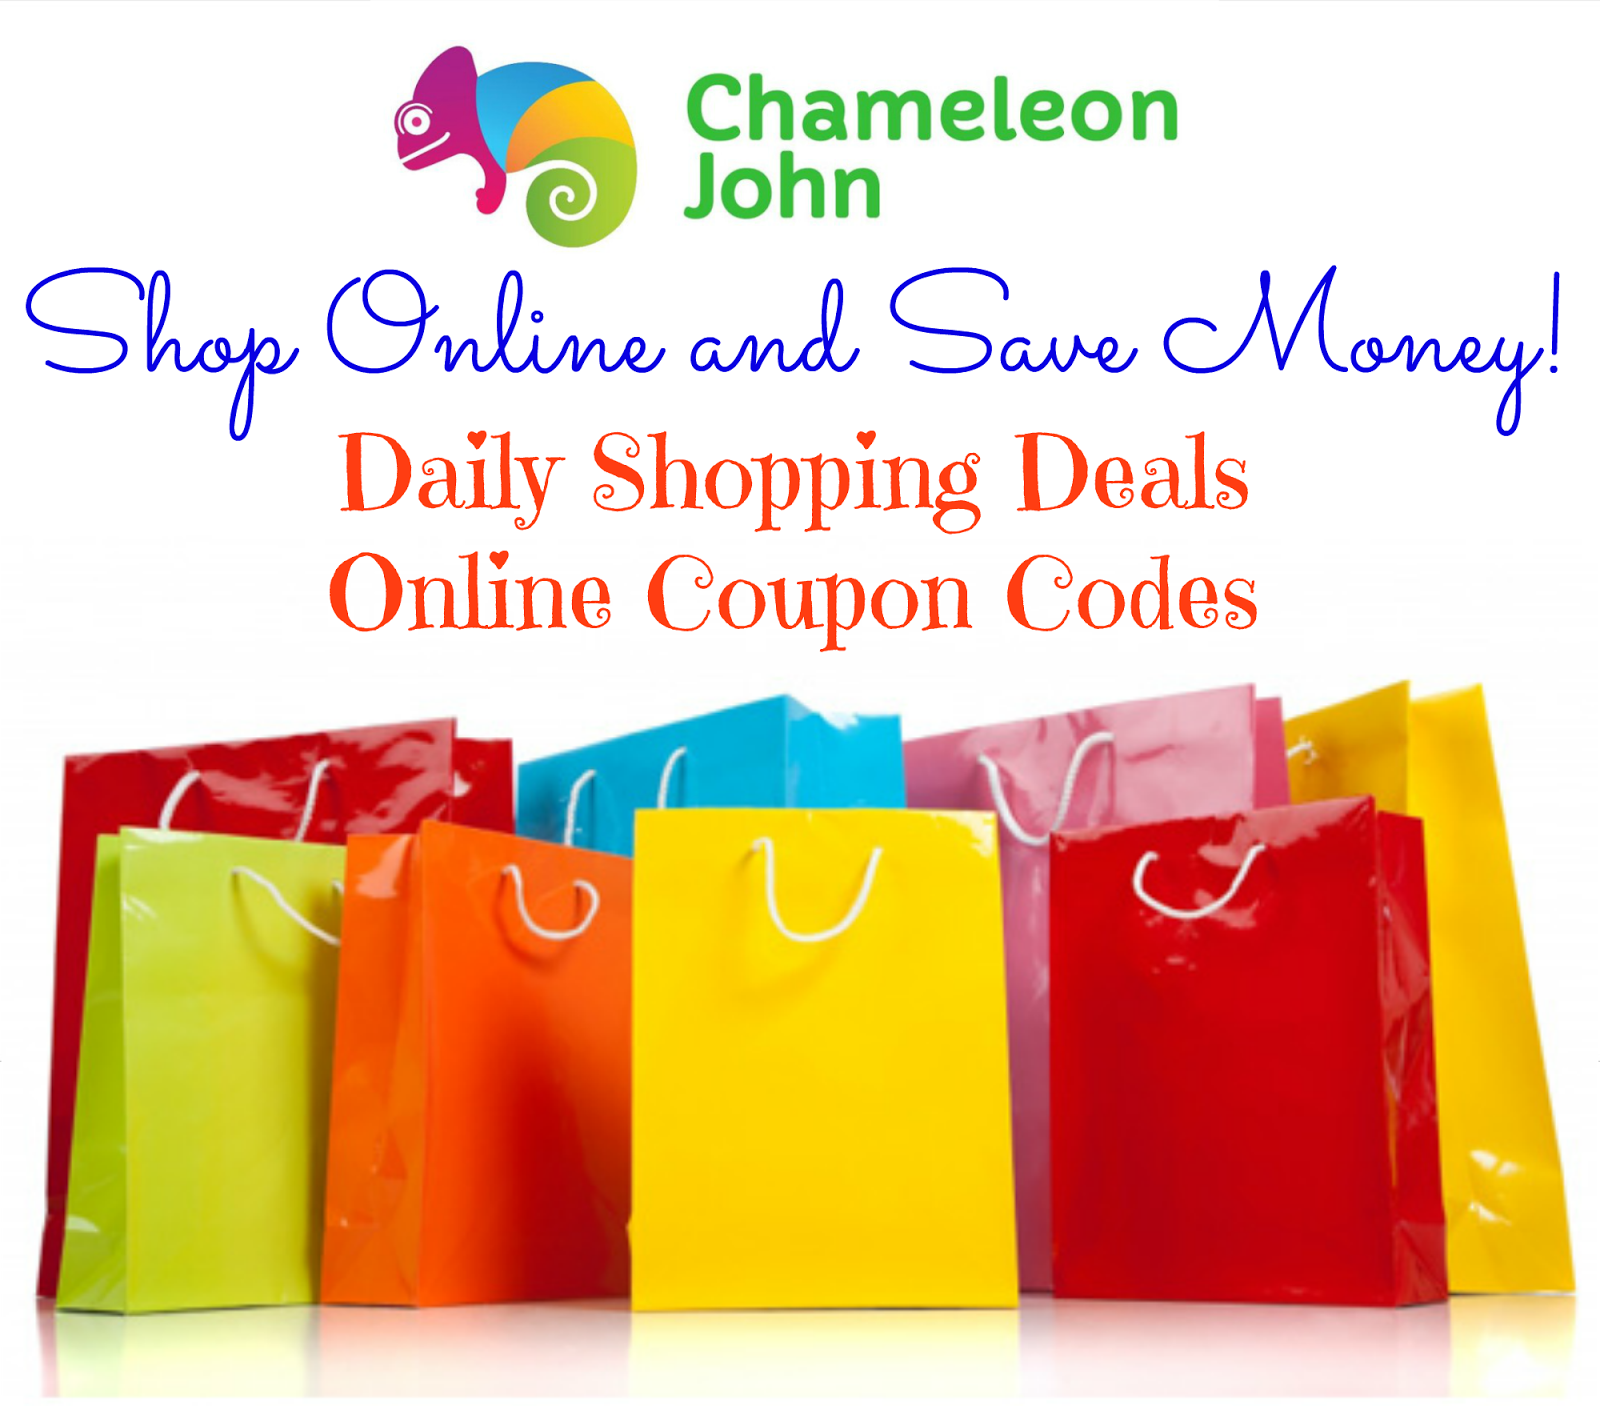 Use Free Promo and Coupon Codes When Shopping Online